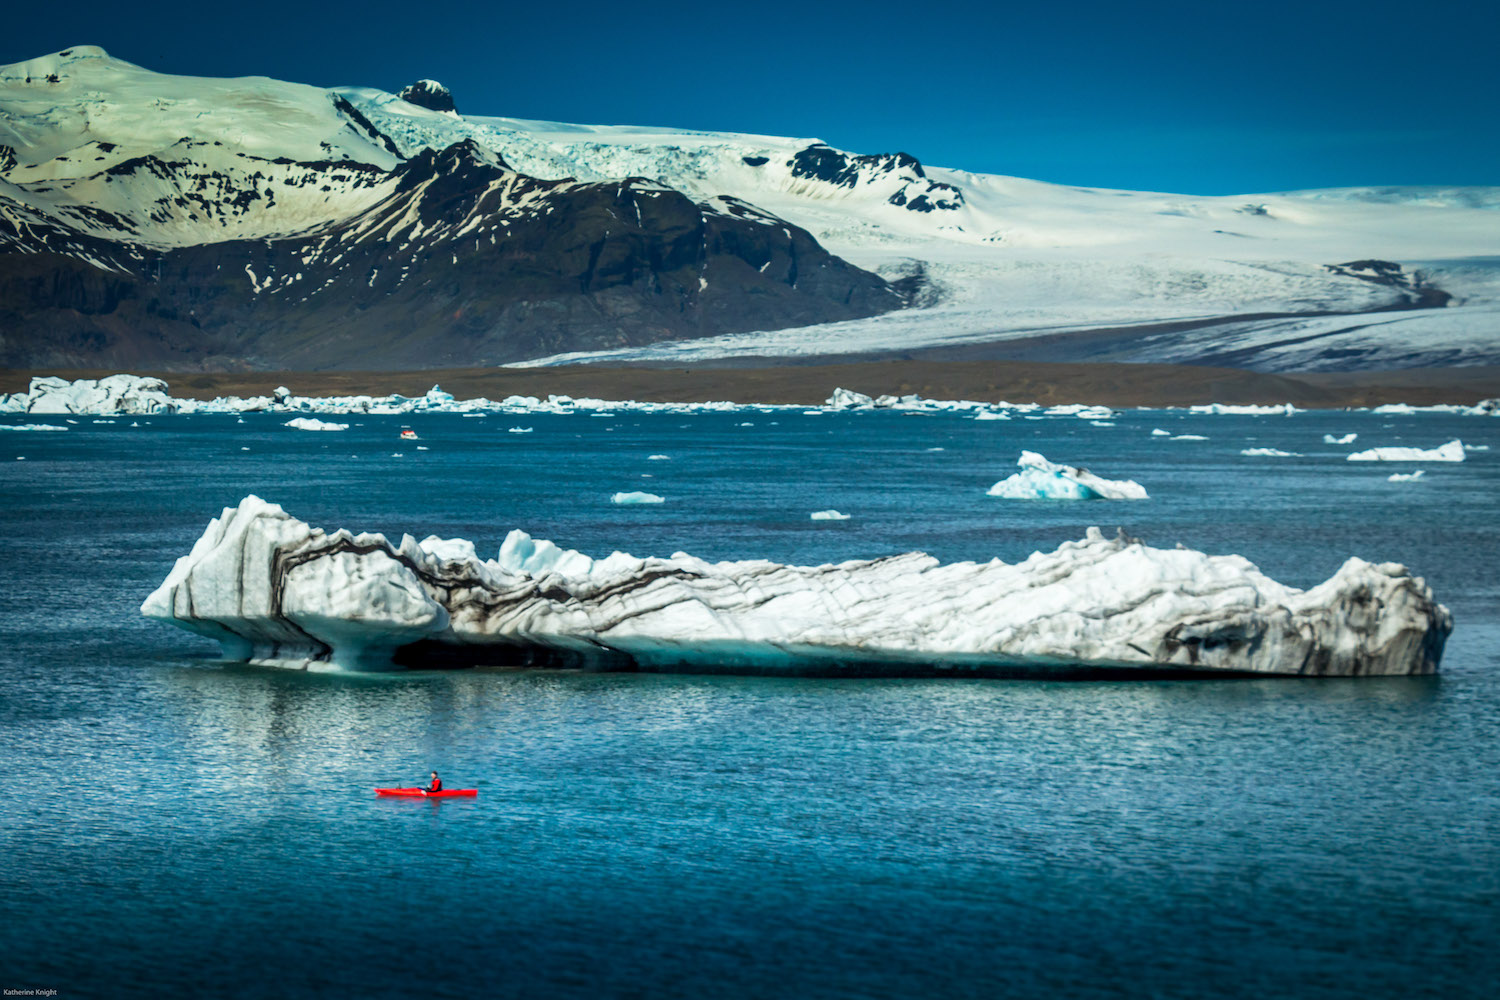 Sailing research expedition in the arctic